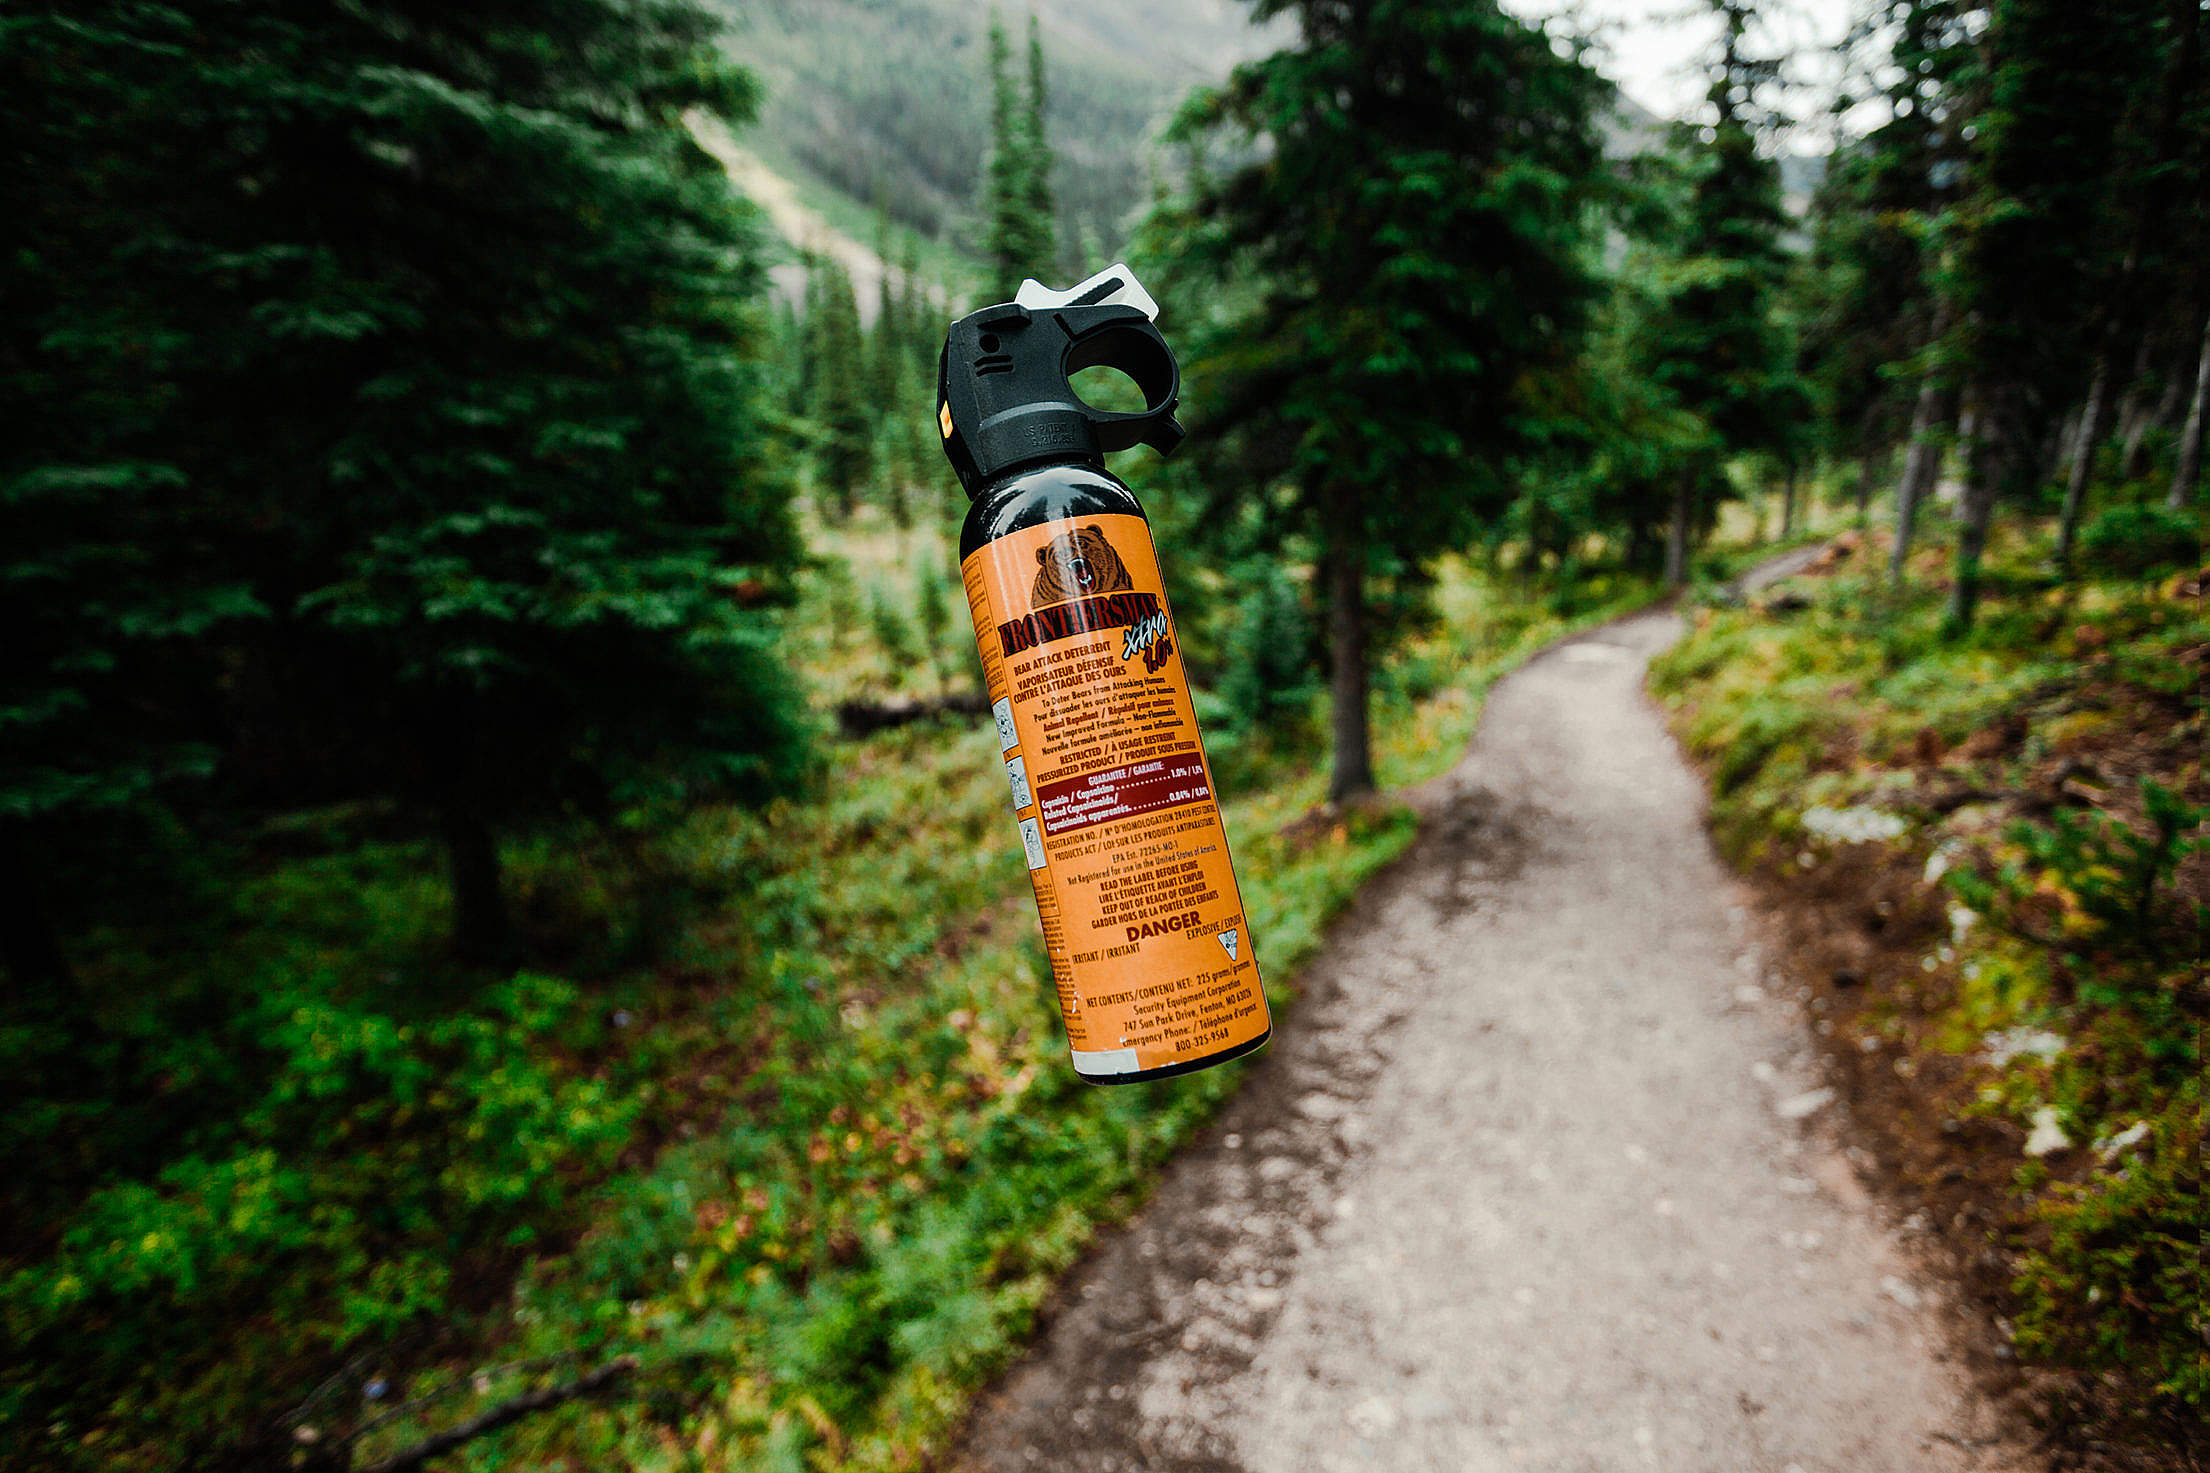 Bear Spray on a Hiking Trail Free Stock Photo